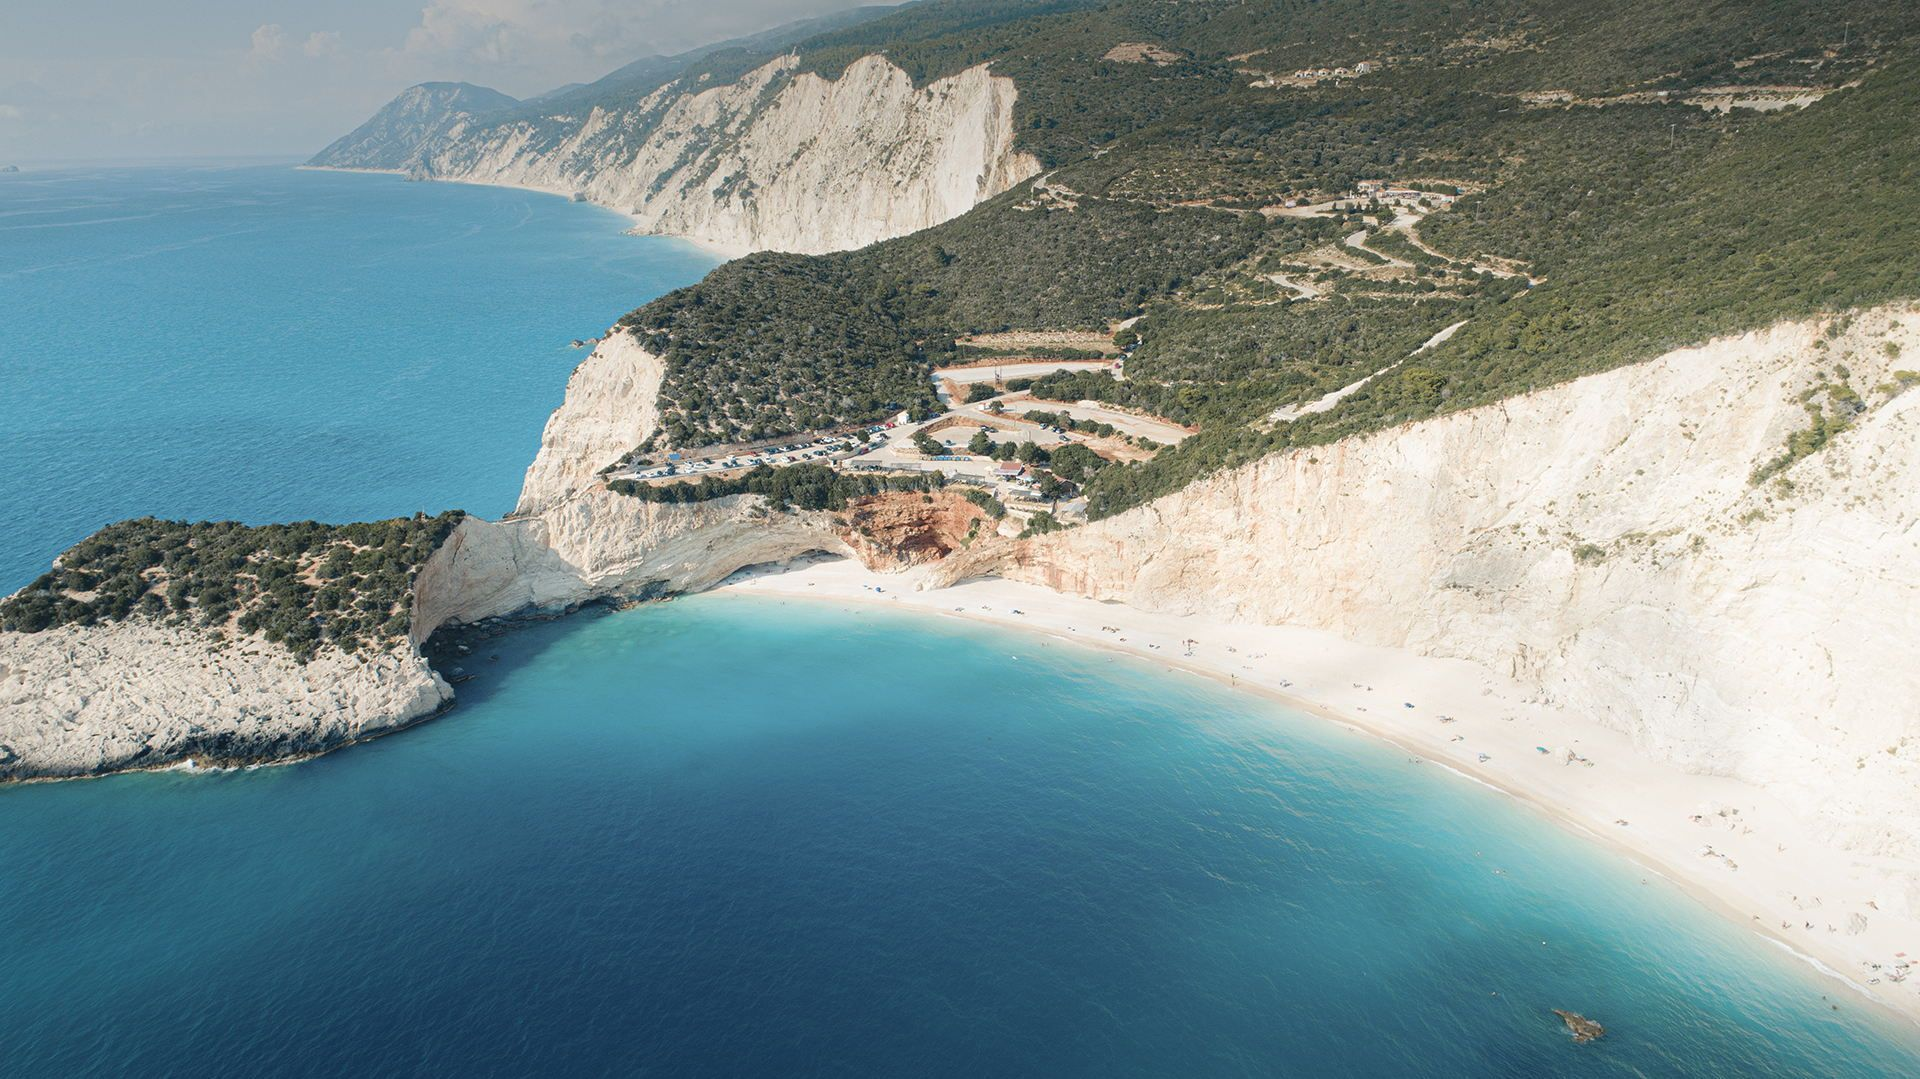 Lefkada Geographical Notes